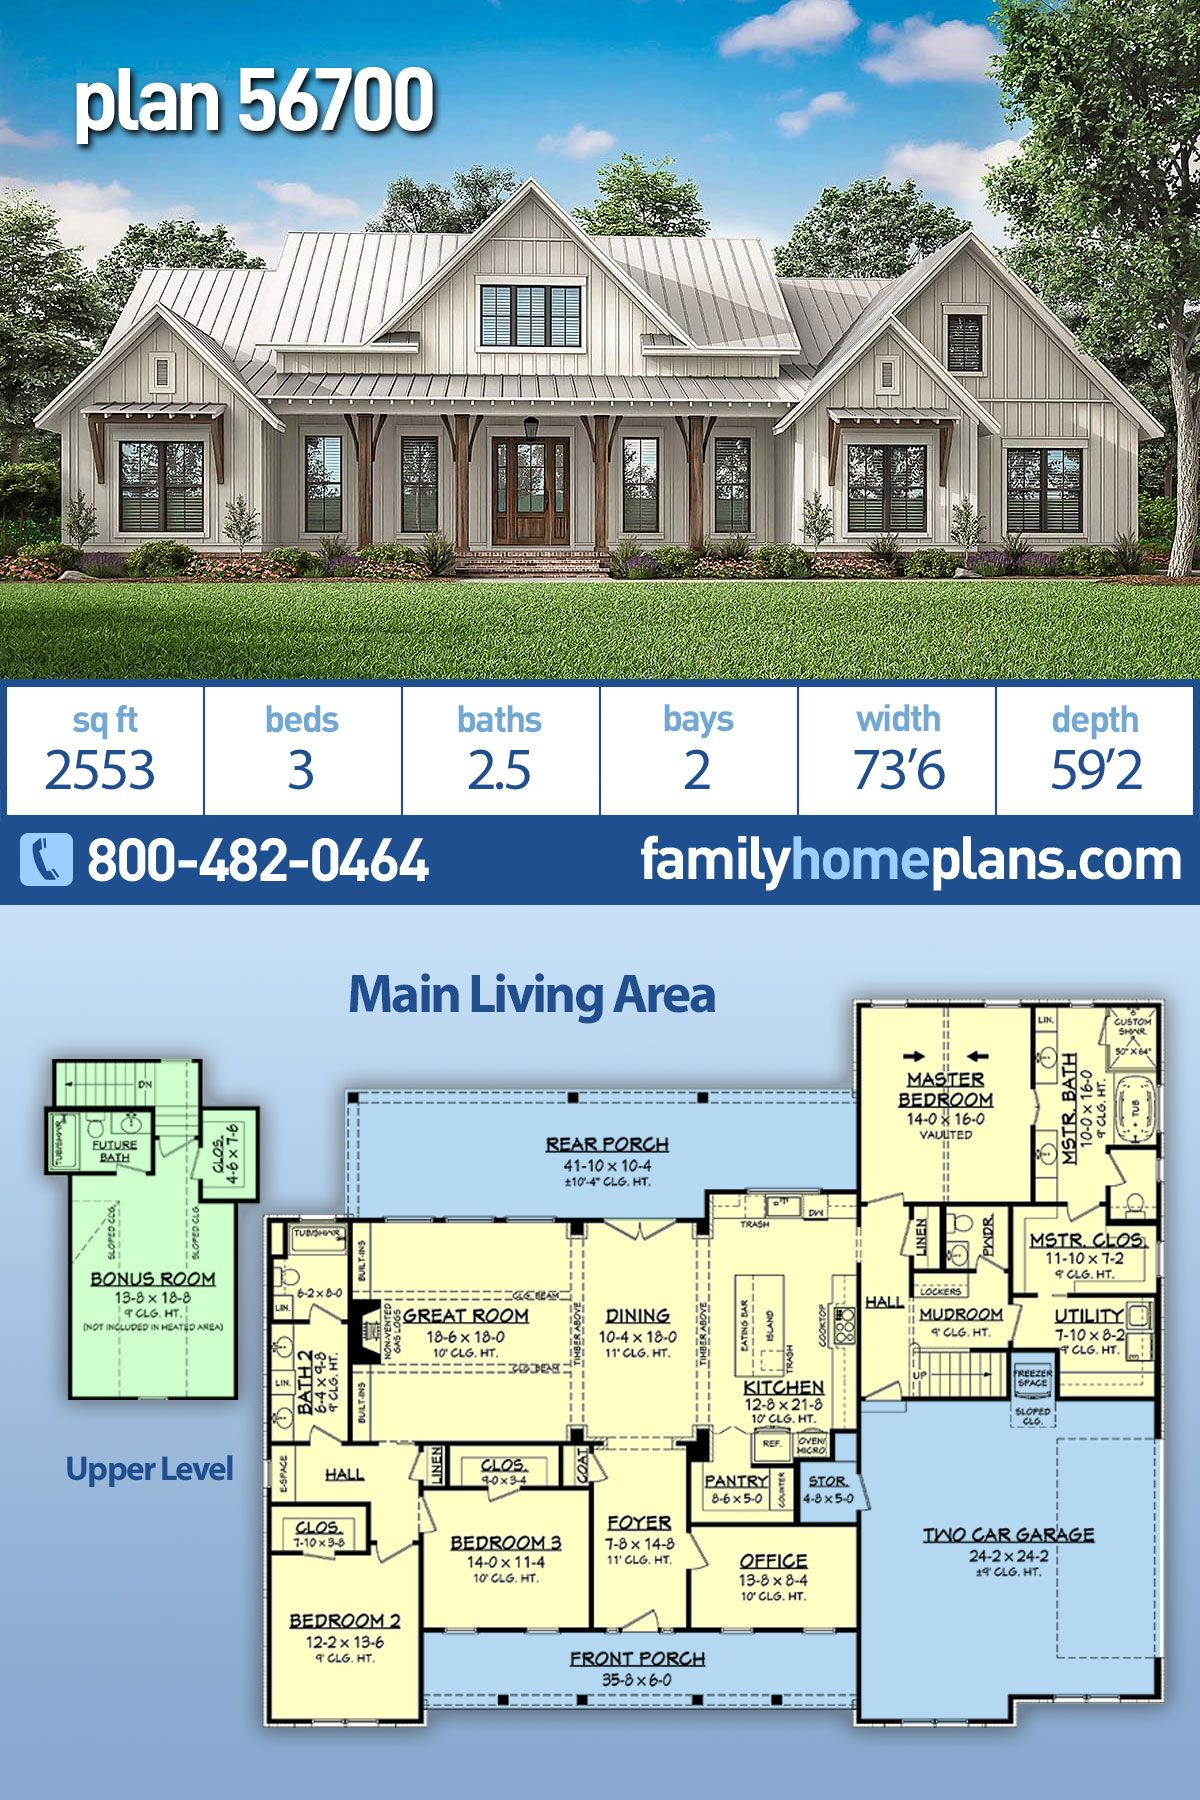 Modern Style House Plan 56700 with 3 Bed, 3 Bath, 2 Car Garage